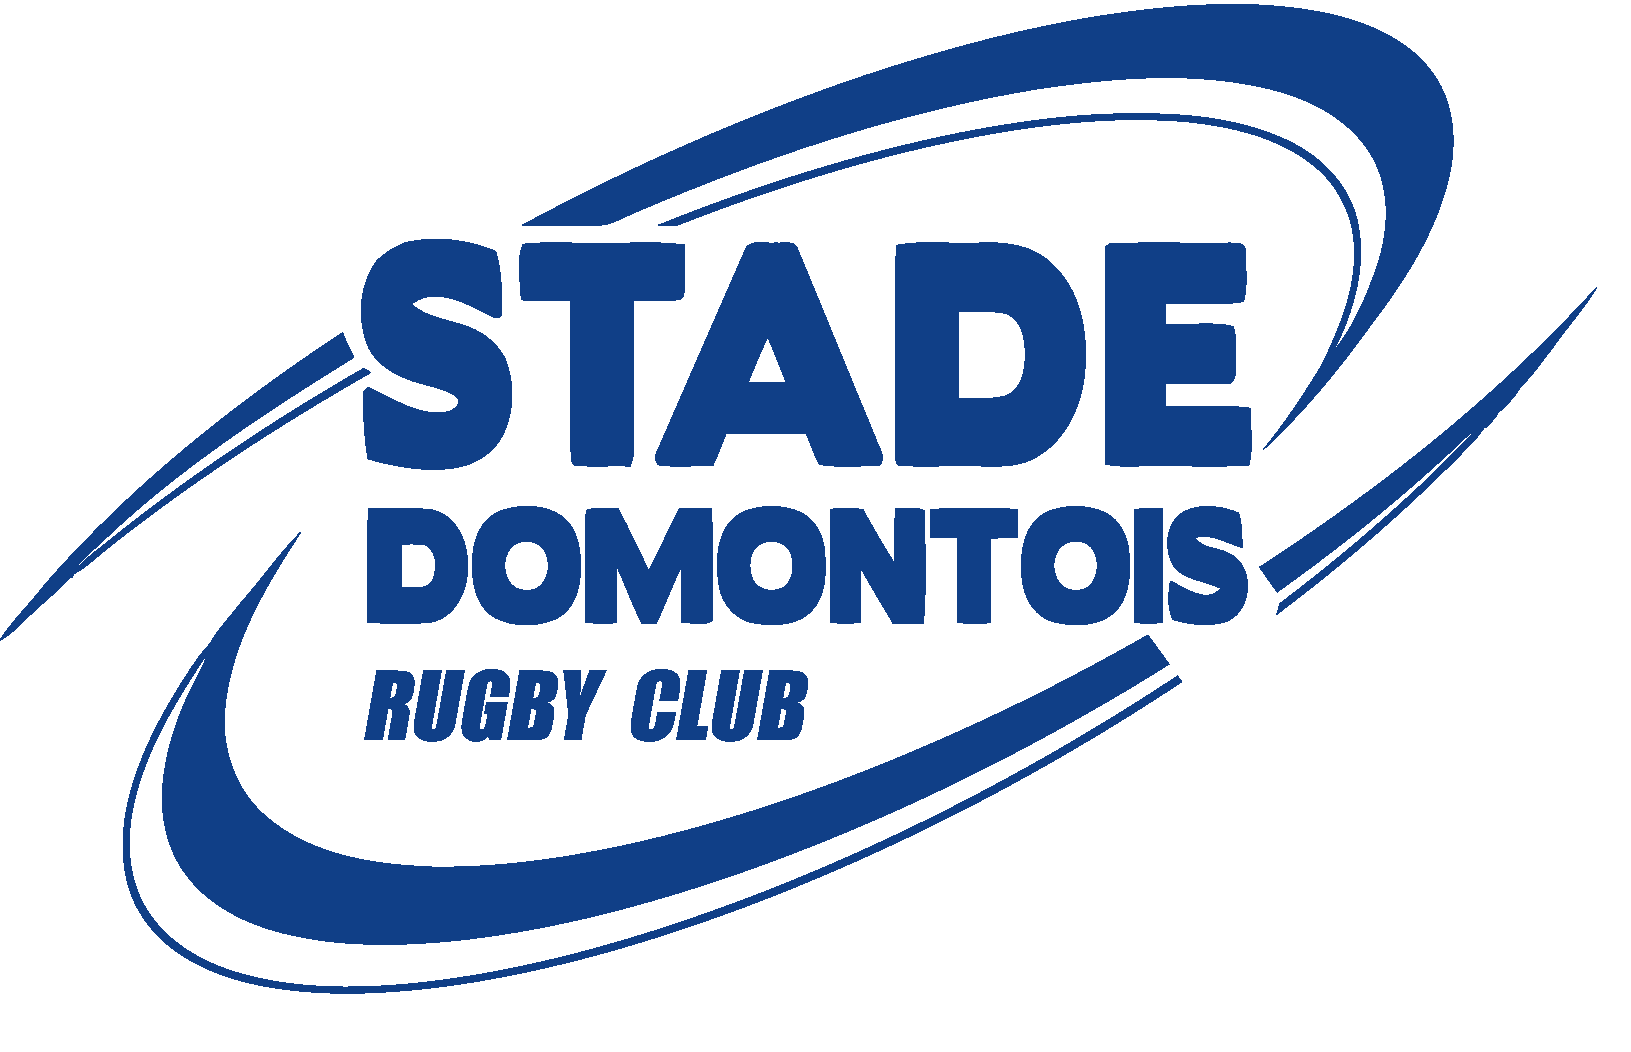 Stade Domontois Rugby club